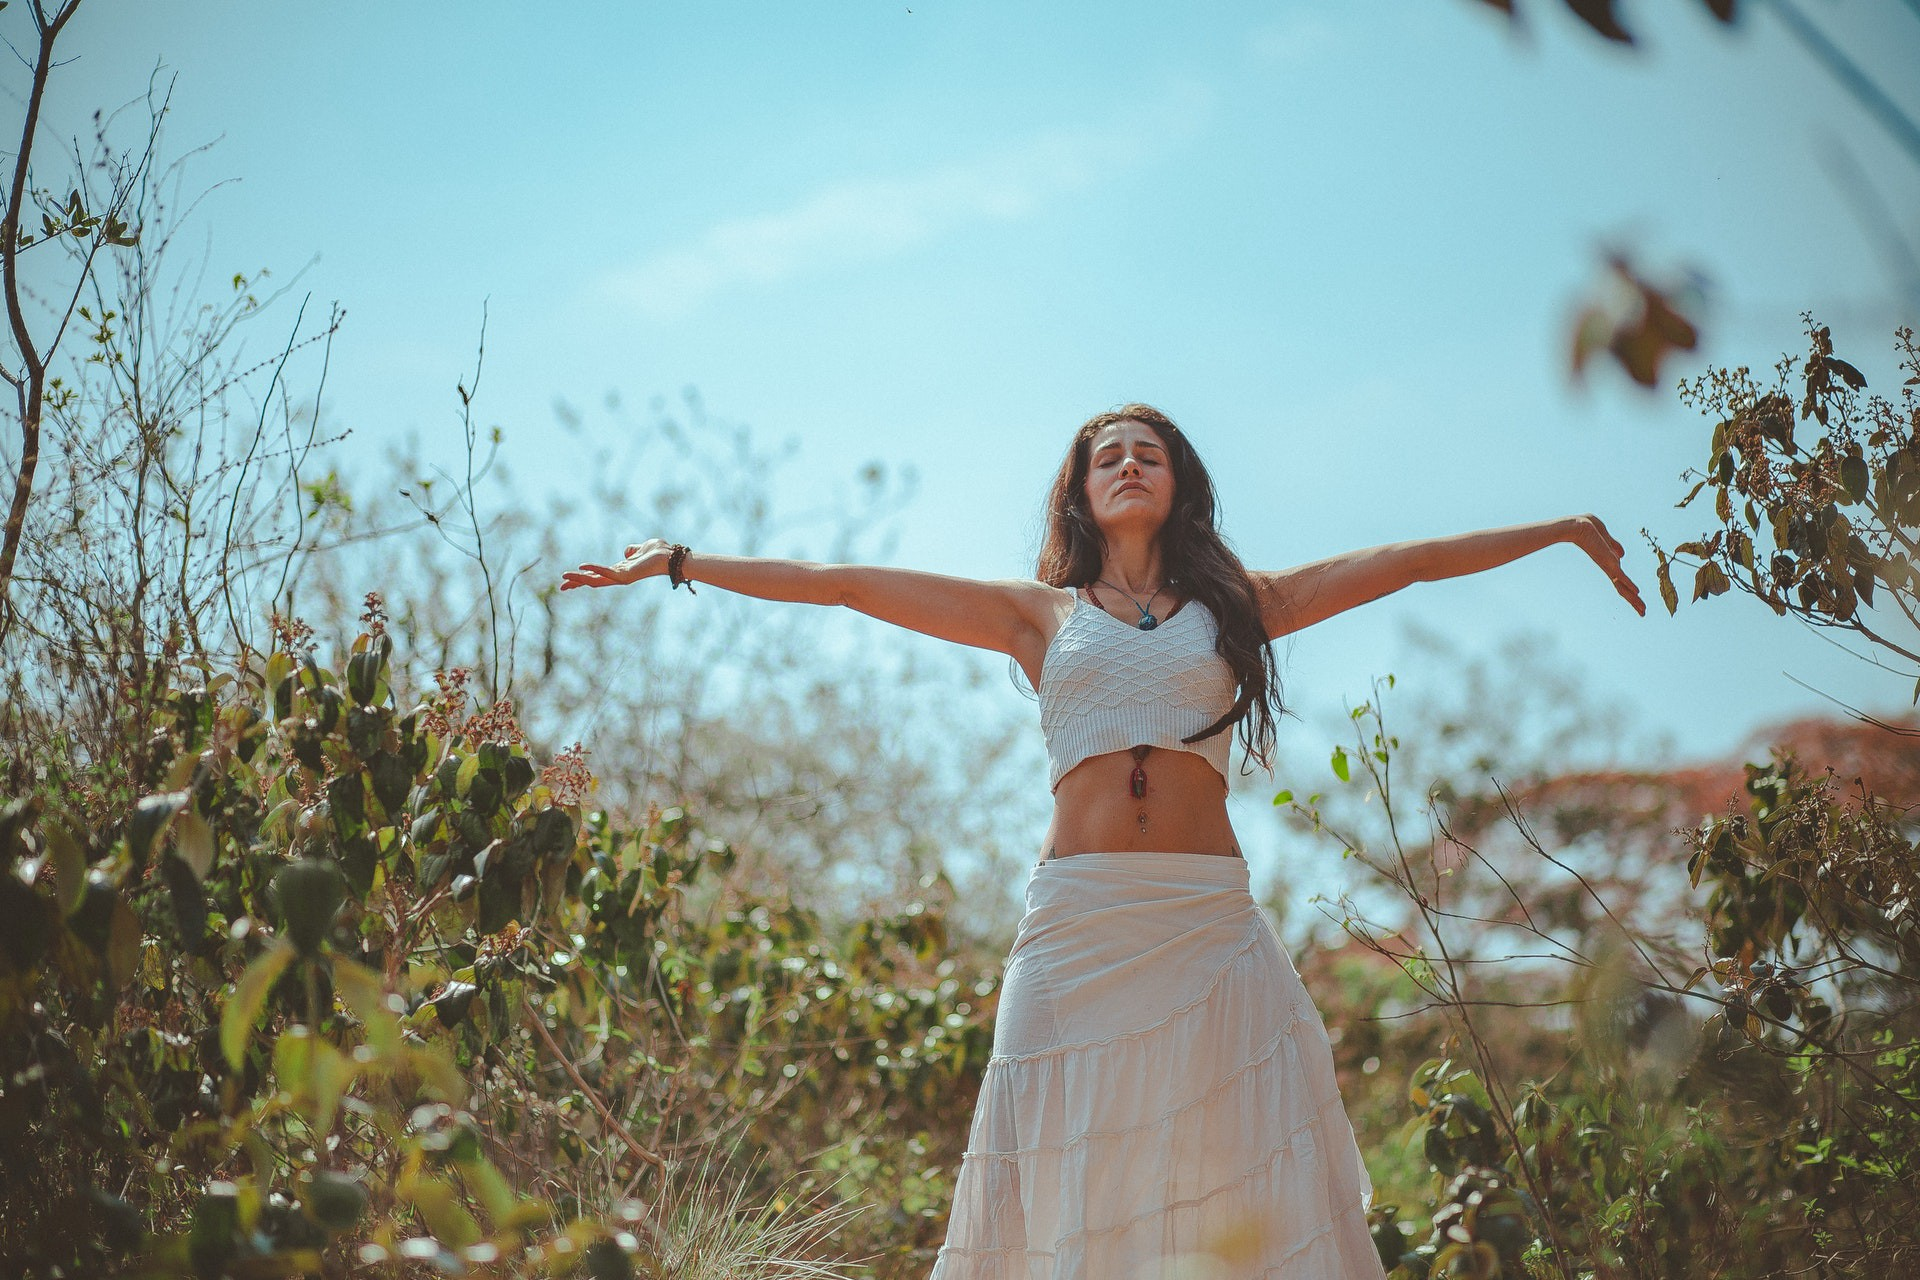 A woman dressed in white linen does a yoga pose in a field.